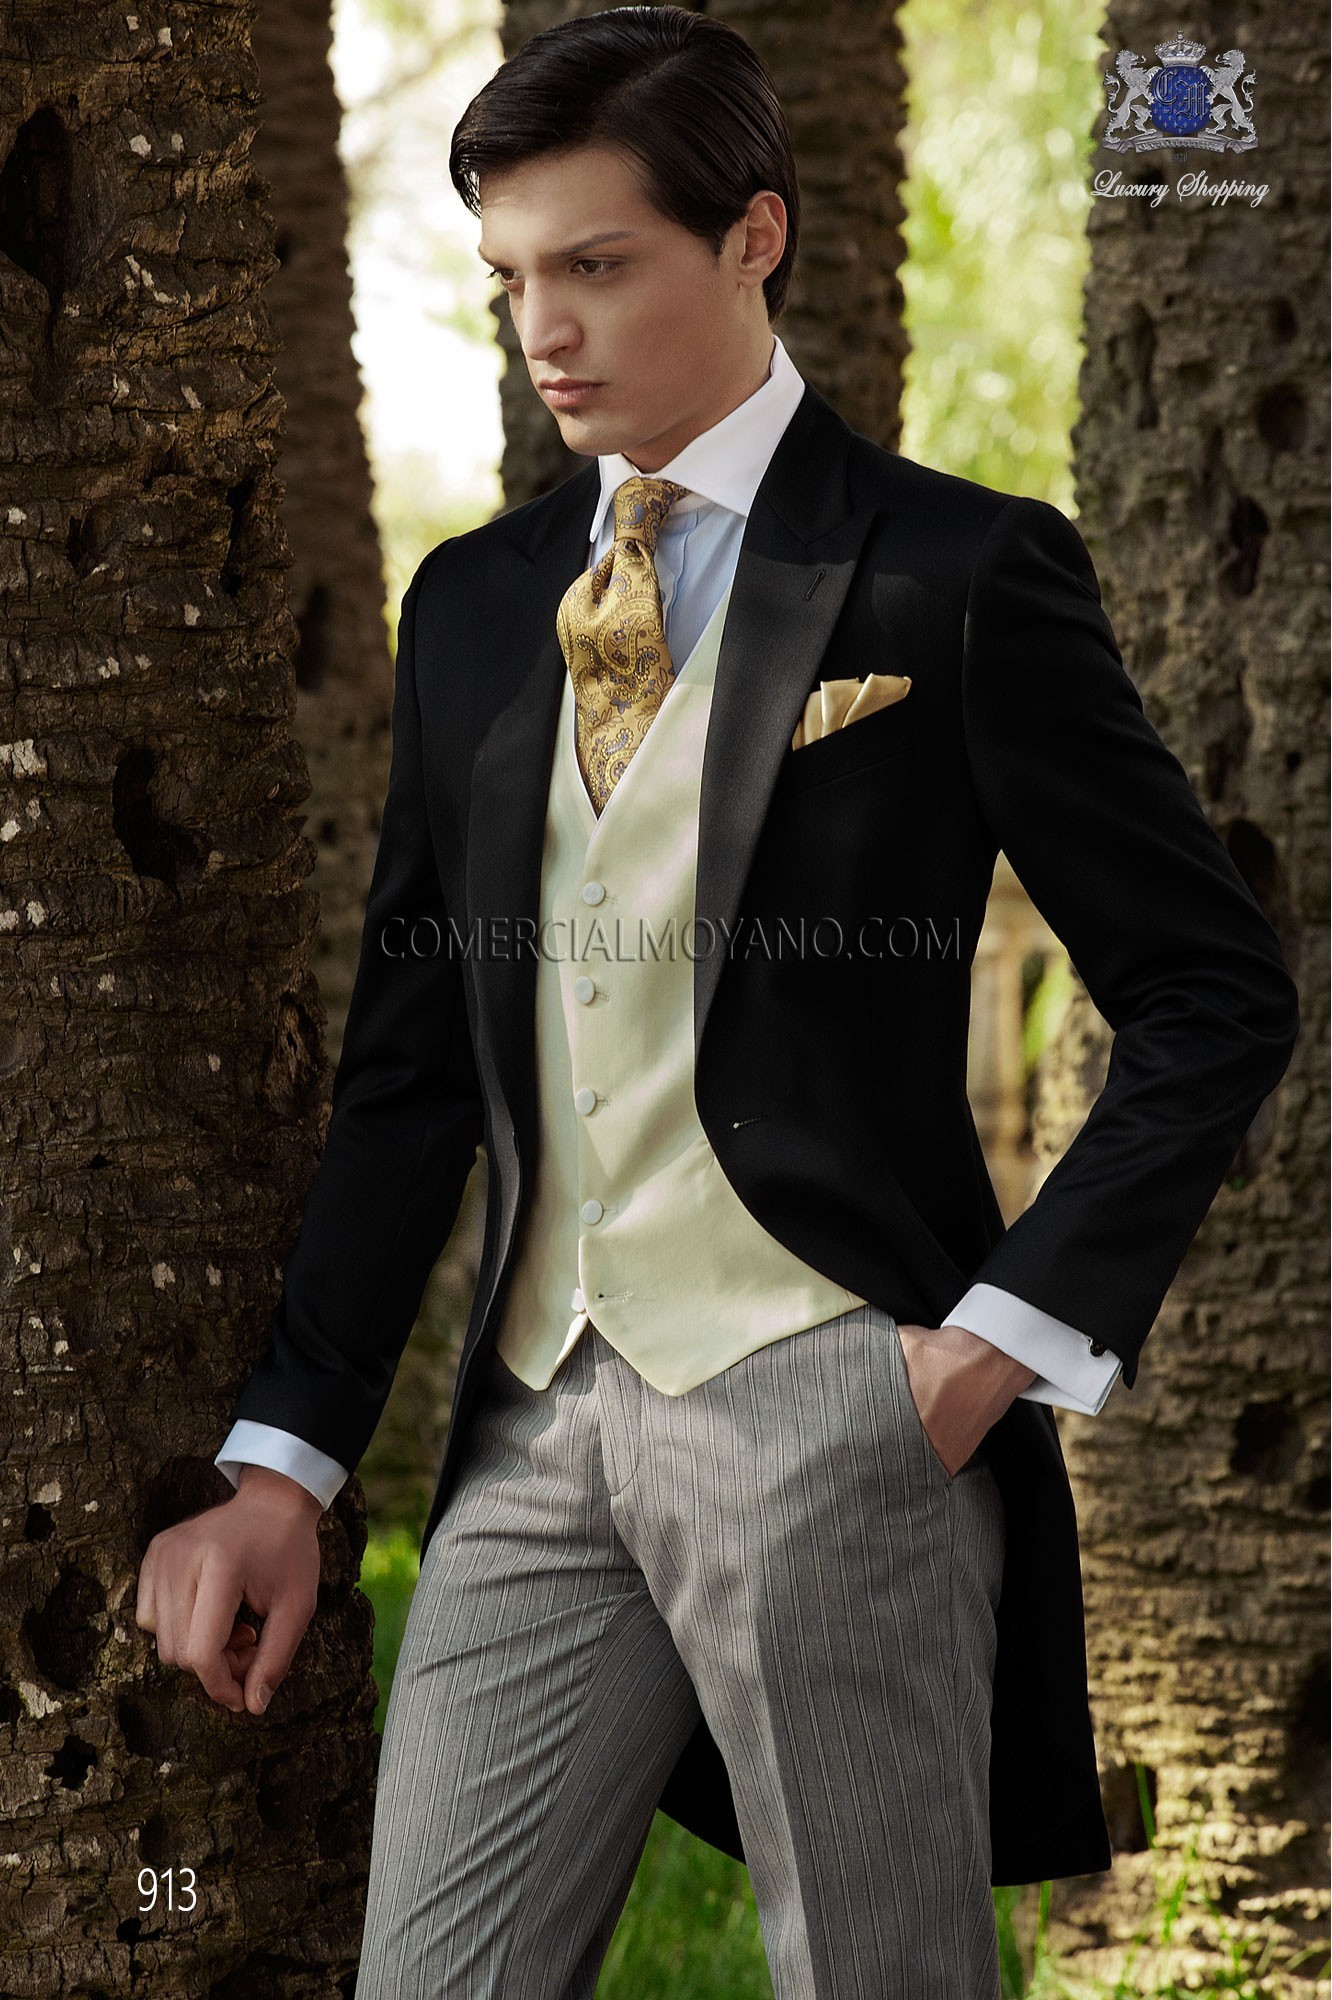 Gentleman black men wedding suit model 913 Ottavio Nuccio Gala